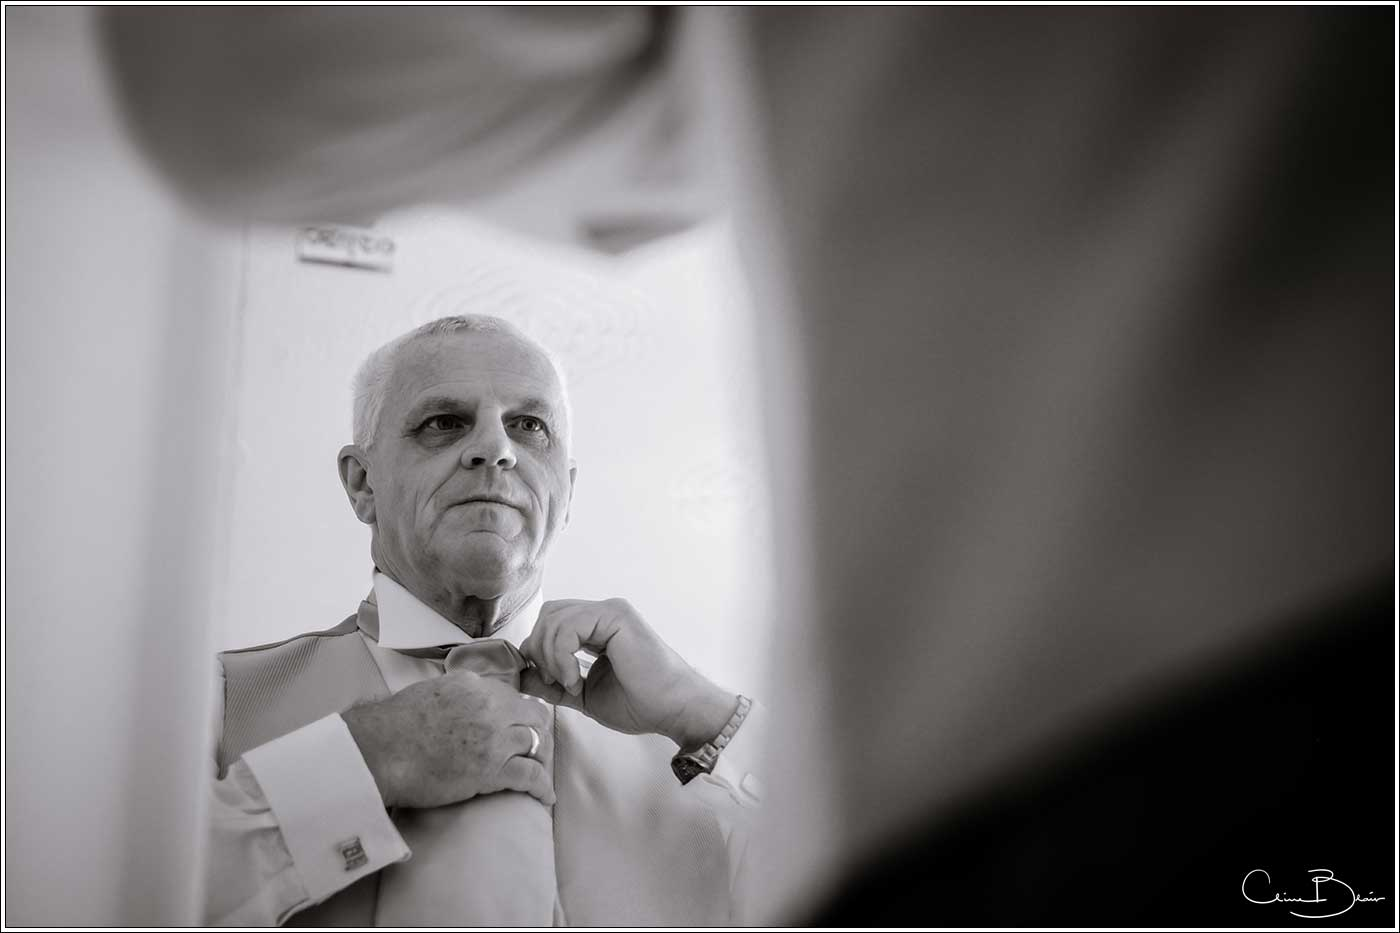 Father of bride getting ready-by Hampton manor wedding photographer Clive Blair Photography